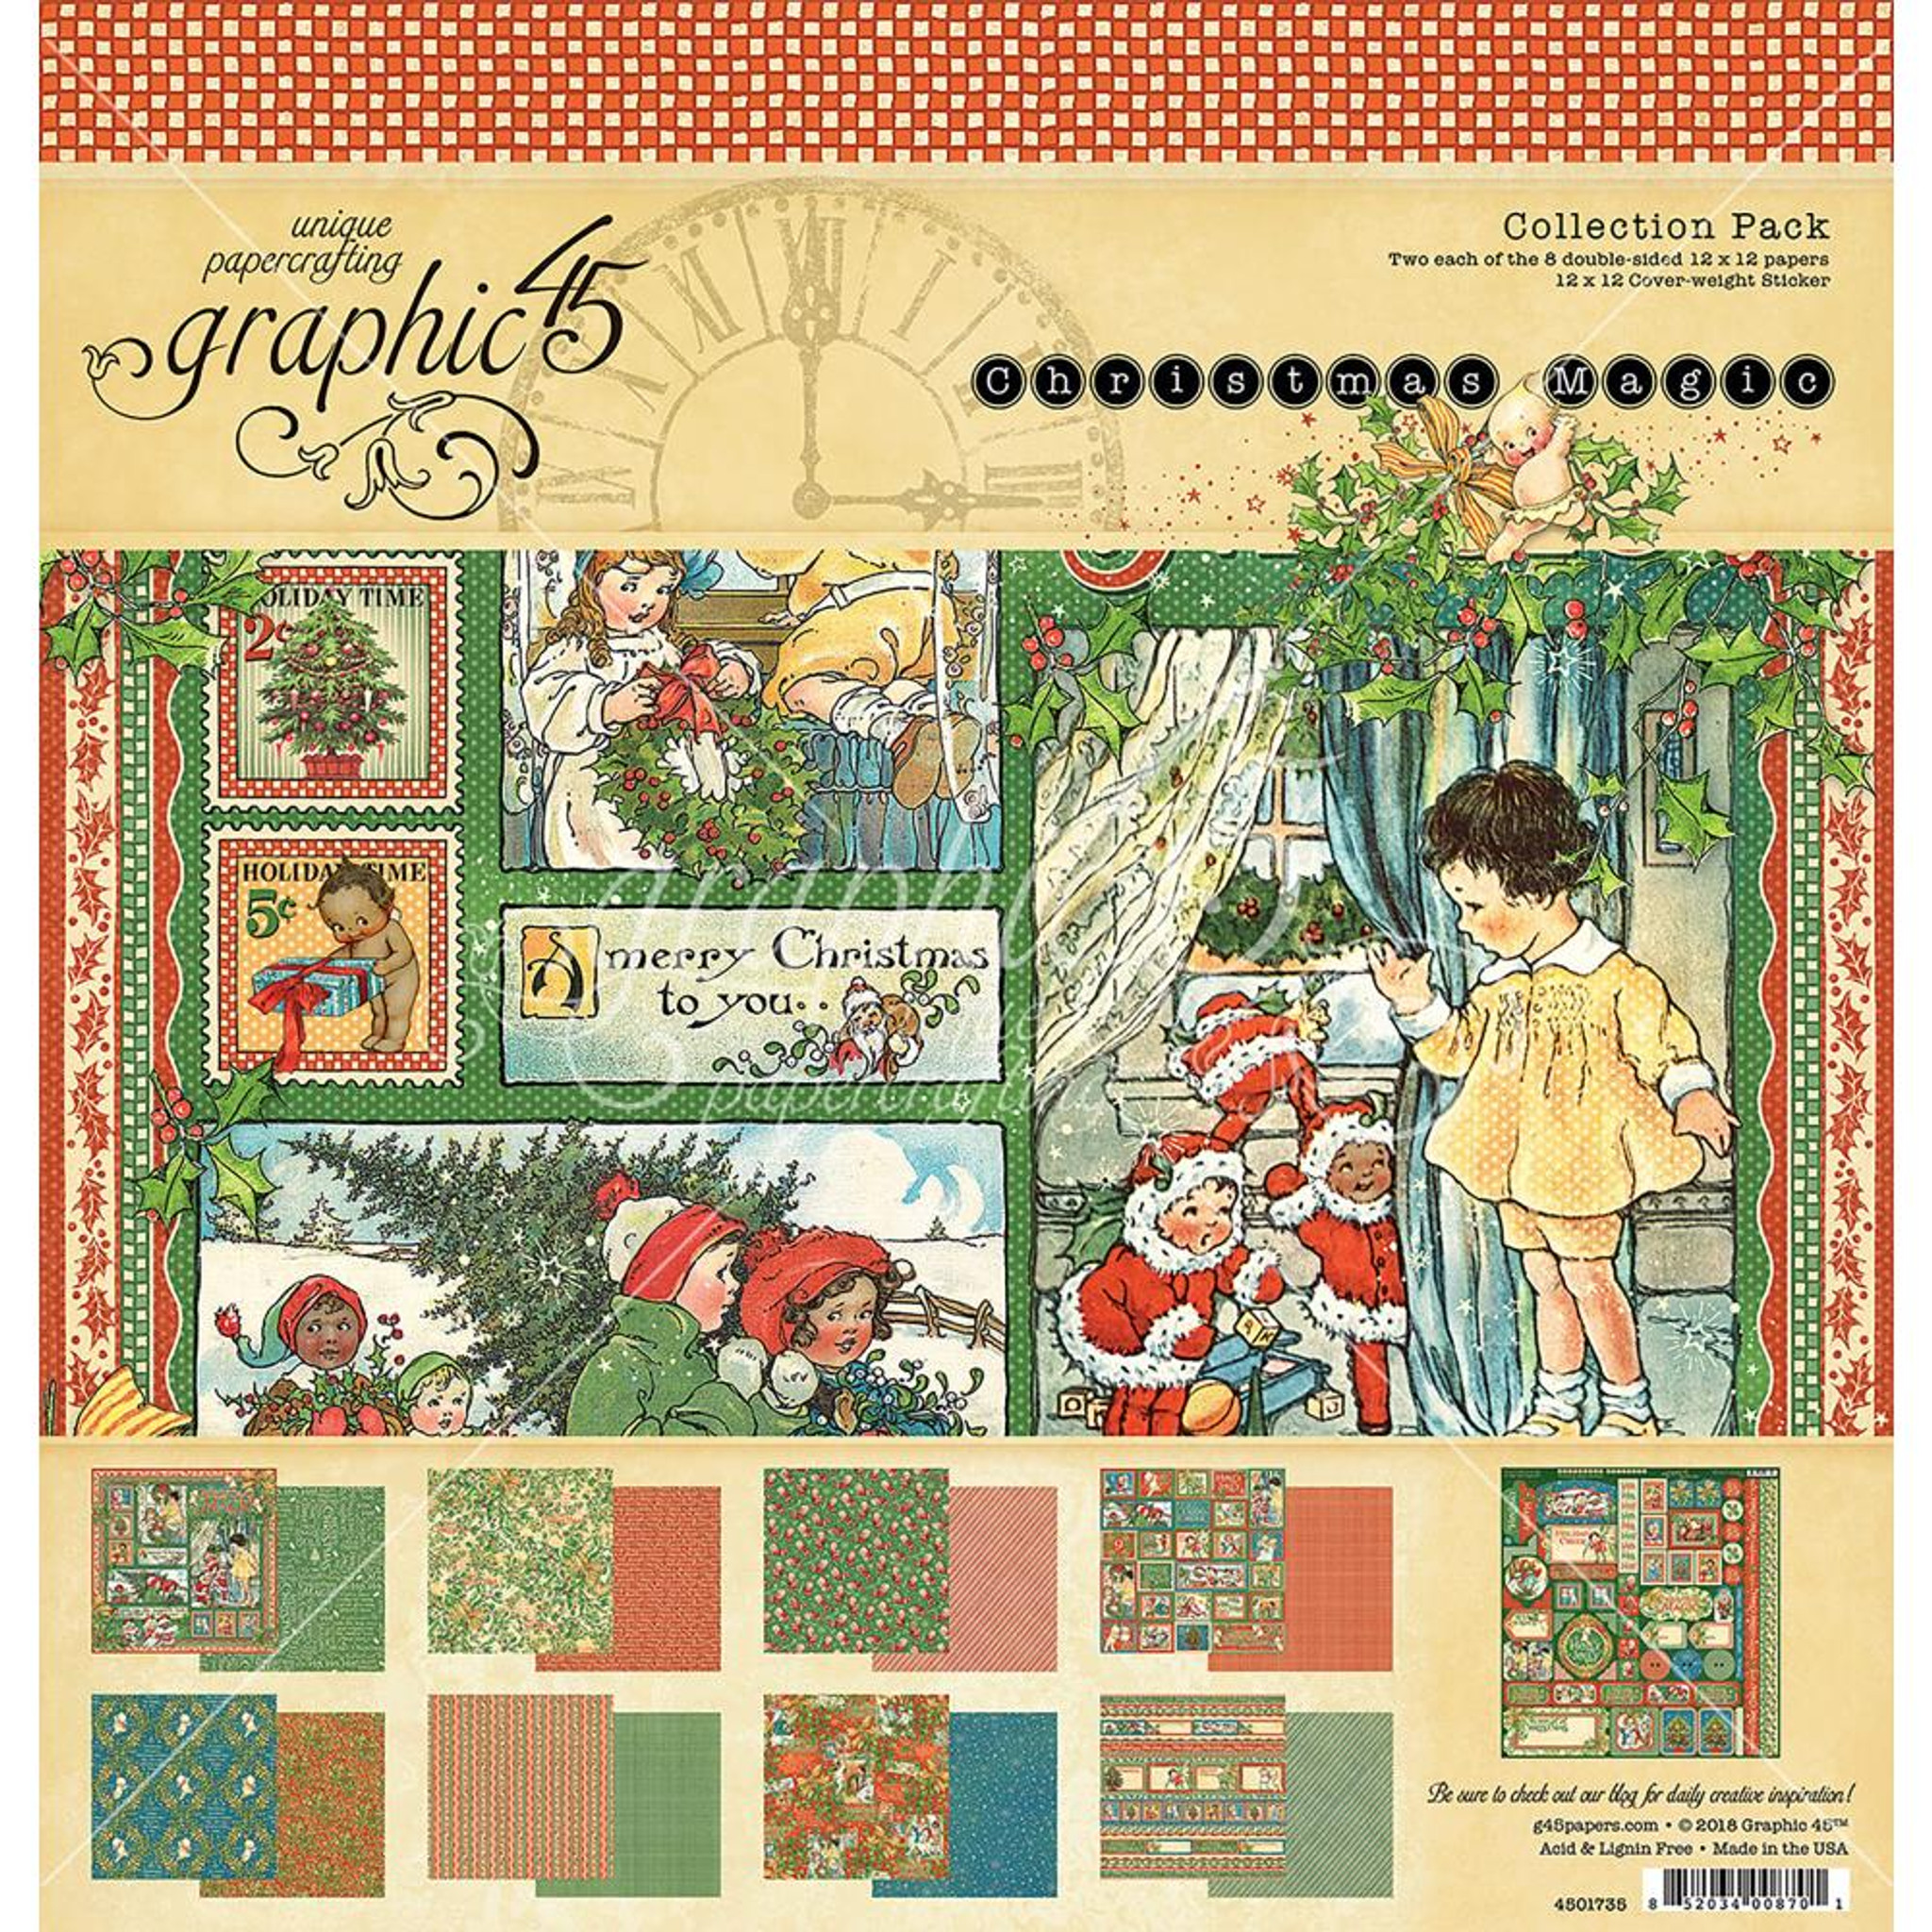 STICKER SHEET Graphic45 SUN KISSED COLLECTION PACK 12 x 12 Scrapbooking PAPER